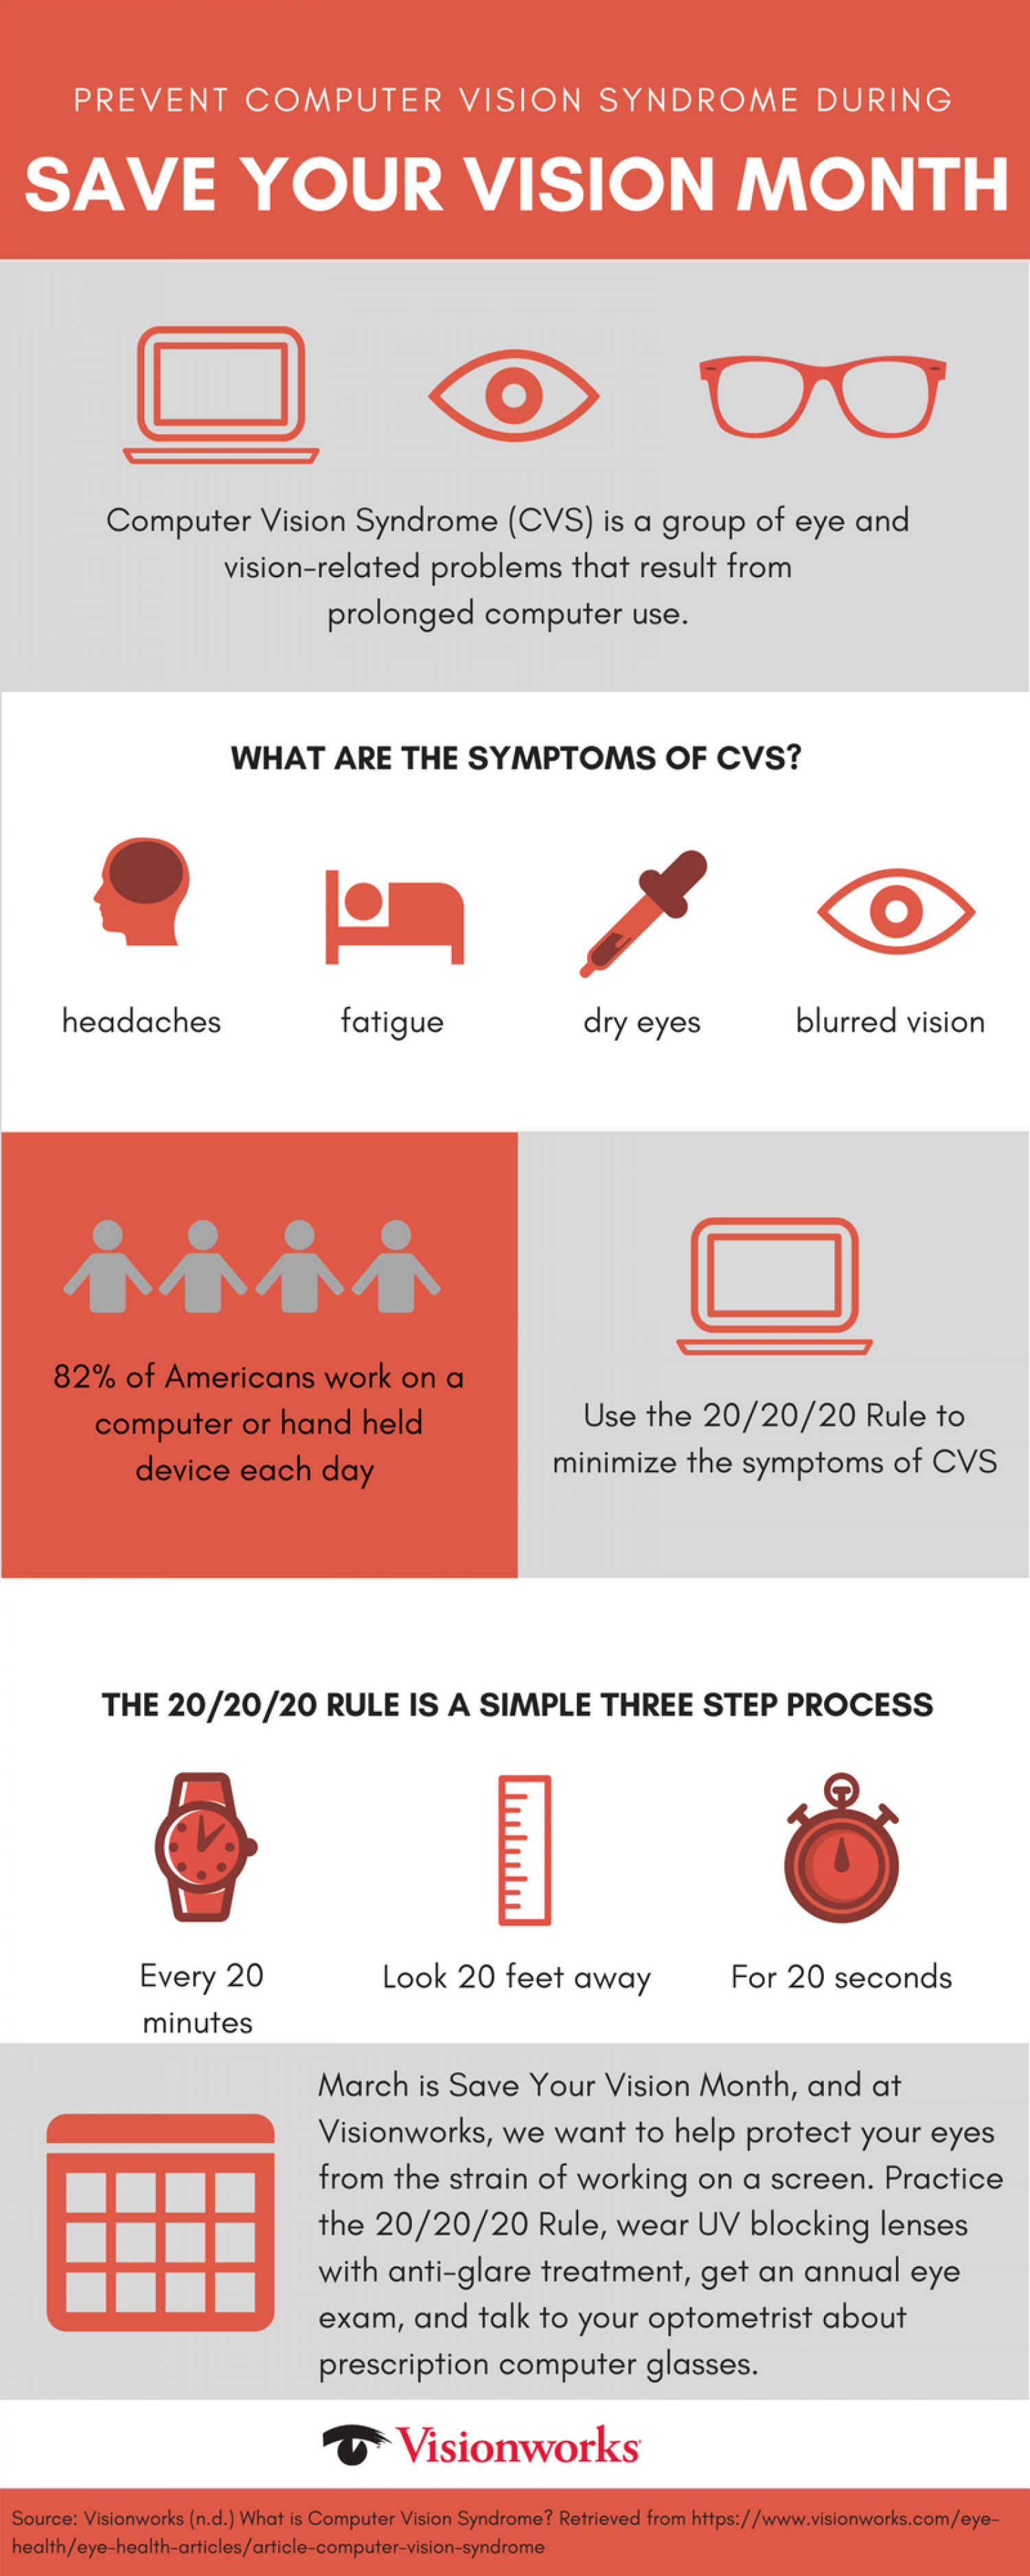 Computer Vision Syndrome - Save Your Vision Month Infographic